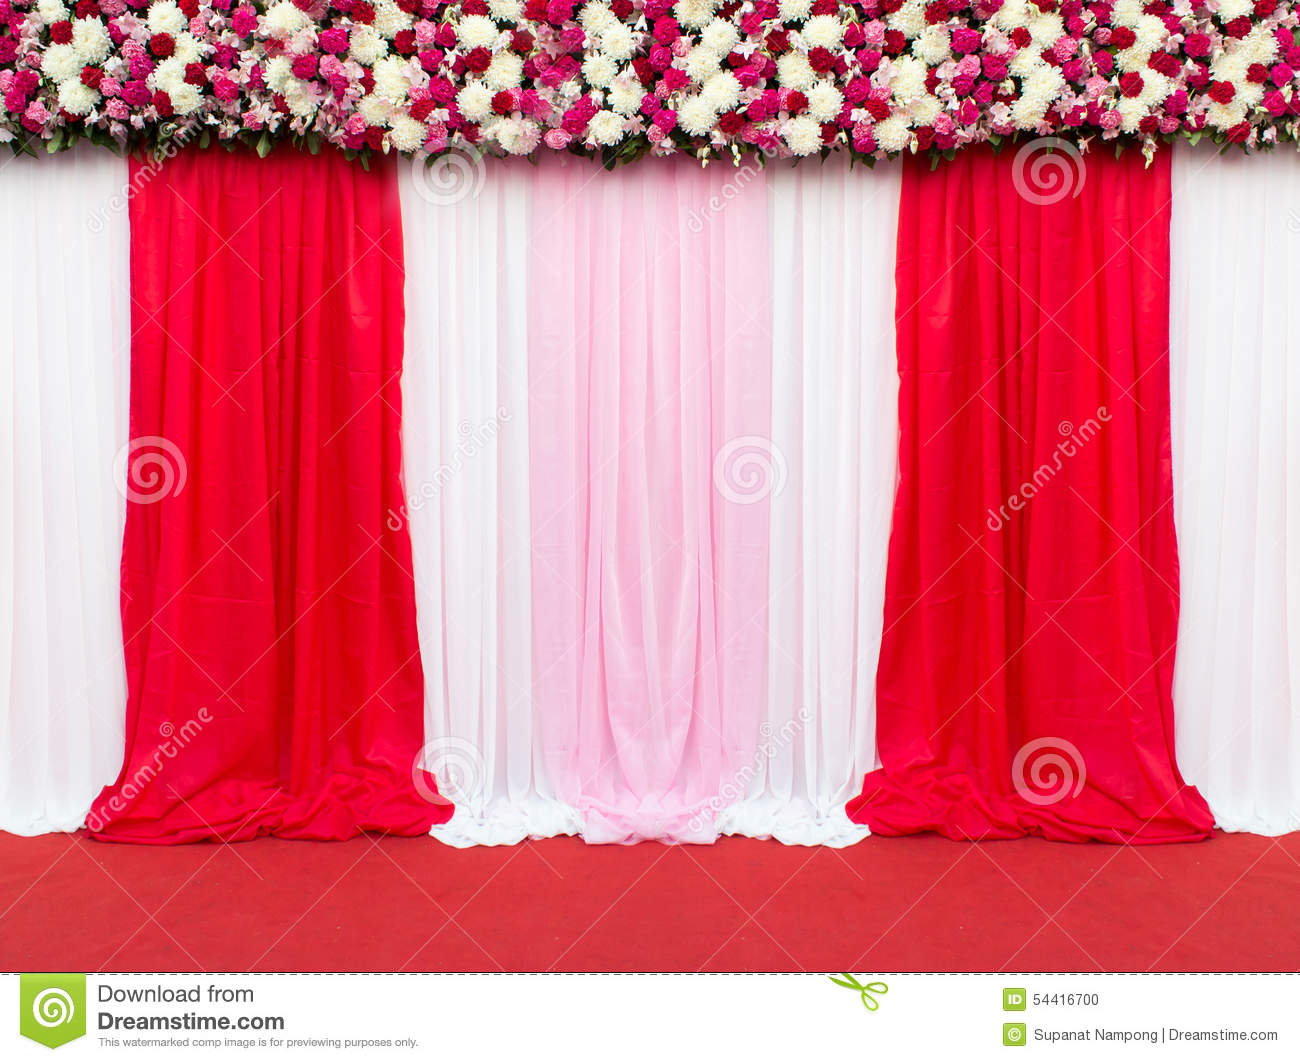 Wedding stage decoration for take picture stock photo for Background decoration for wedding